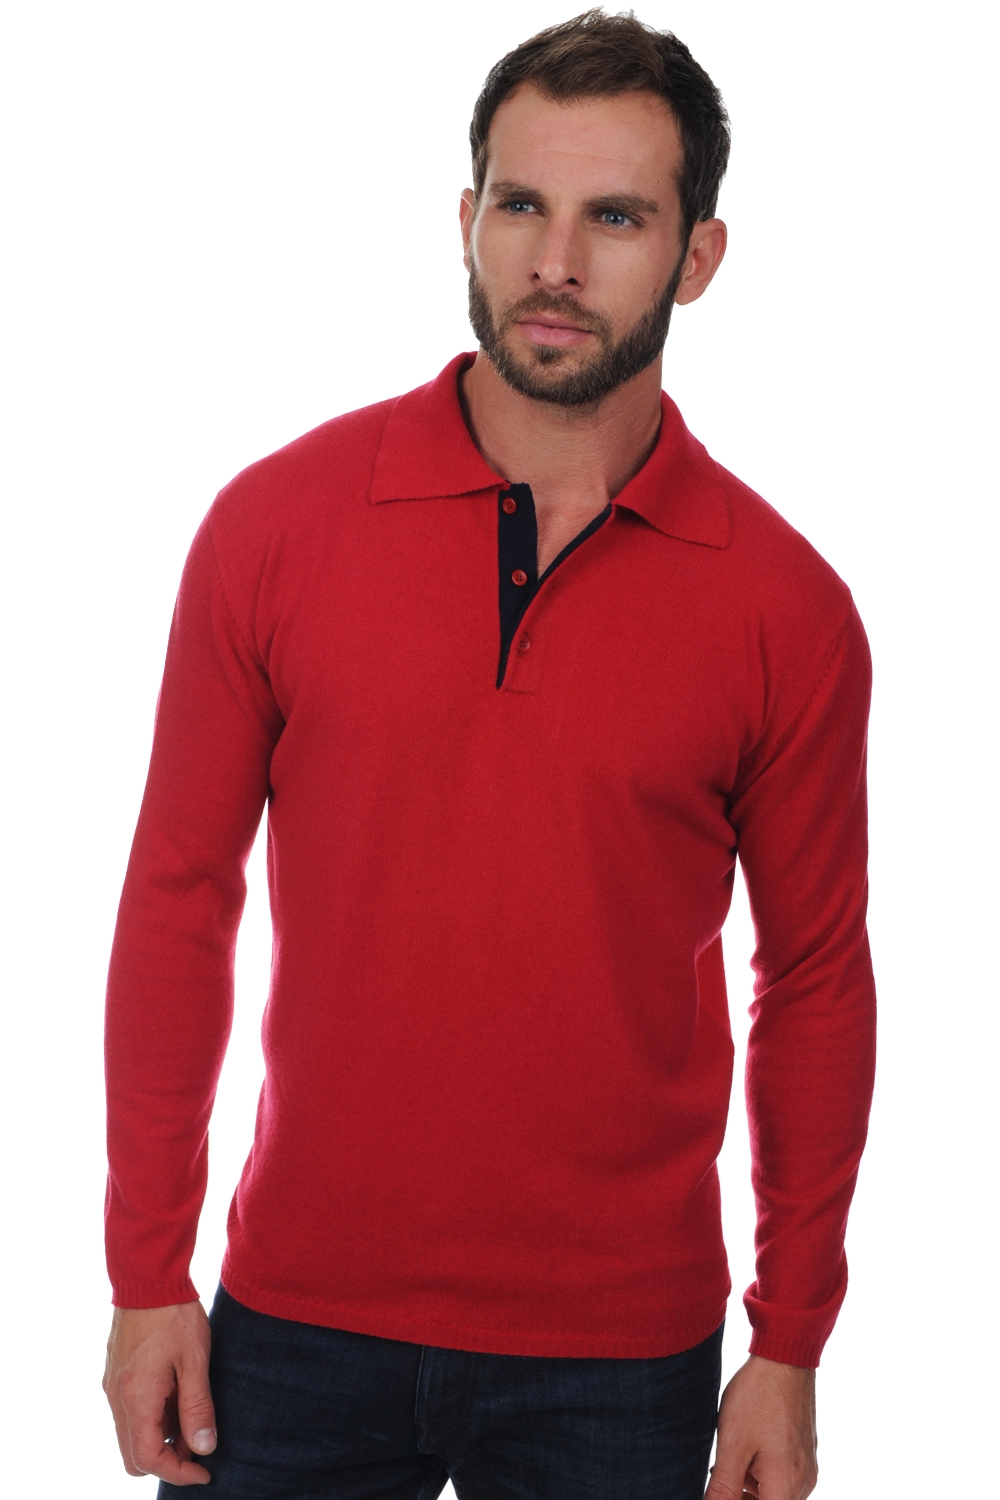 Cashmere men polo style sweaters scott blood red dark navy m